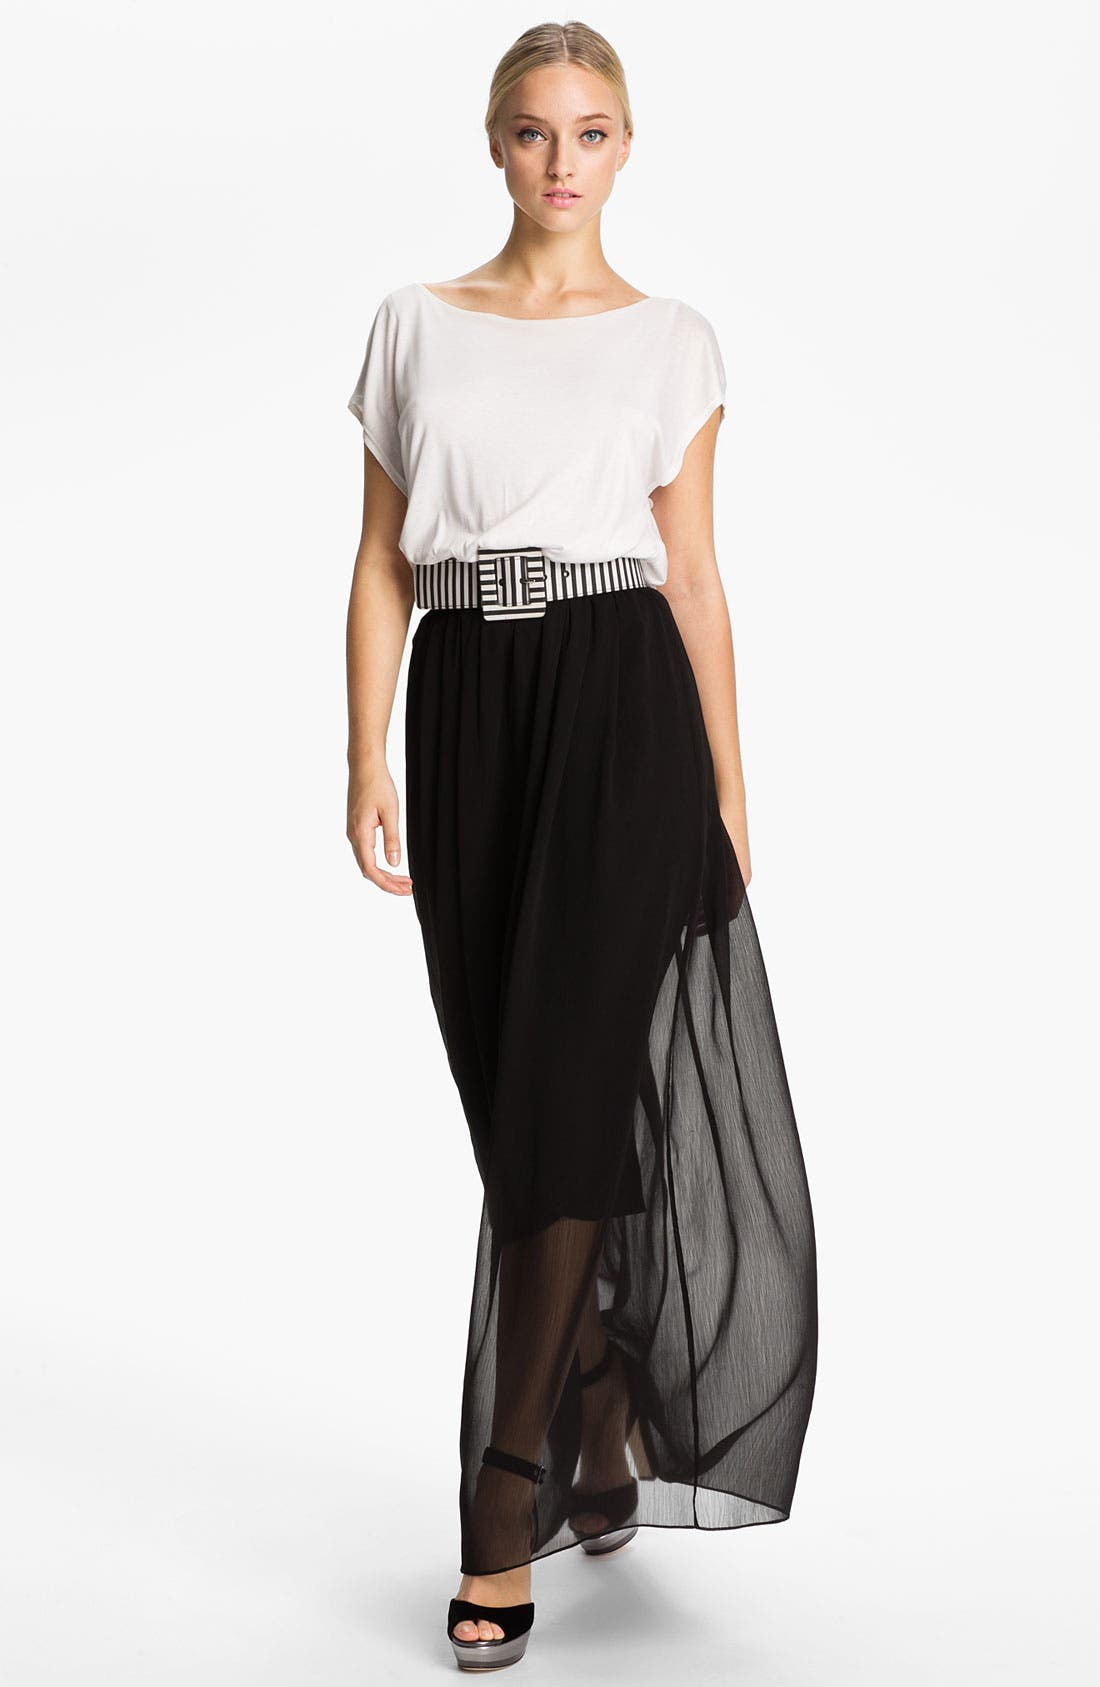 Main Image - Alice + Olivia 'Kirean' Belted Dolman Sleeve Dress